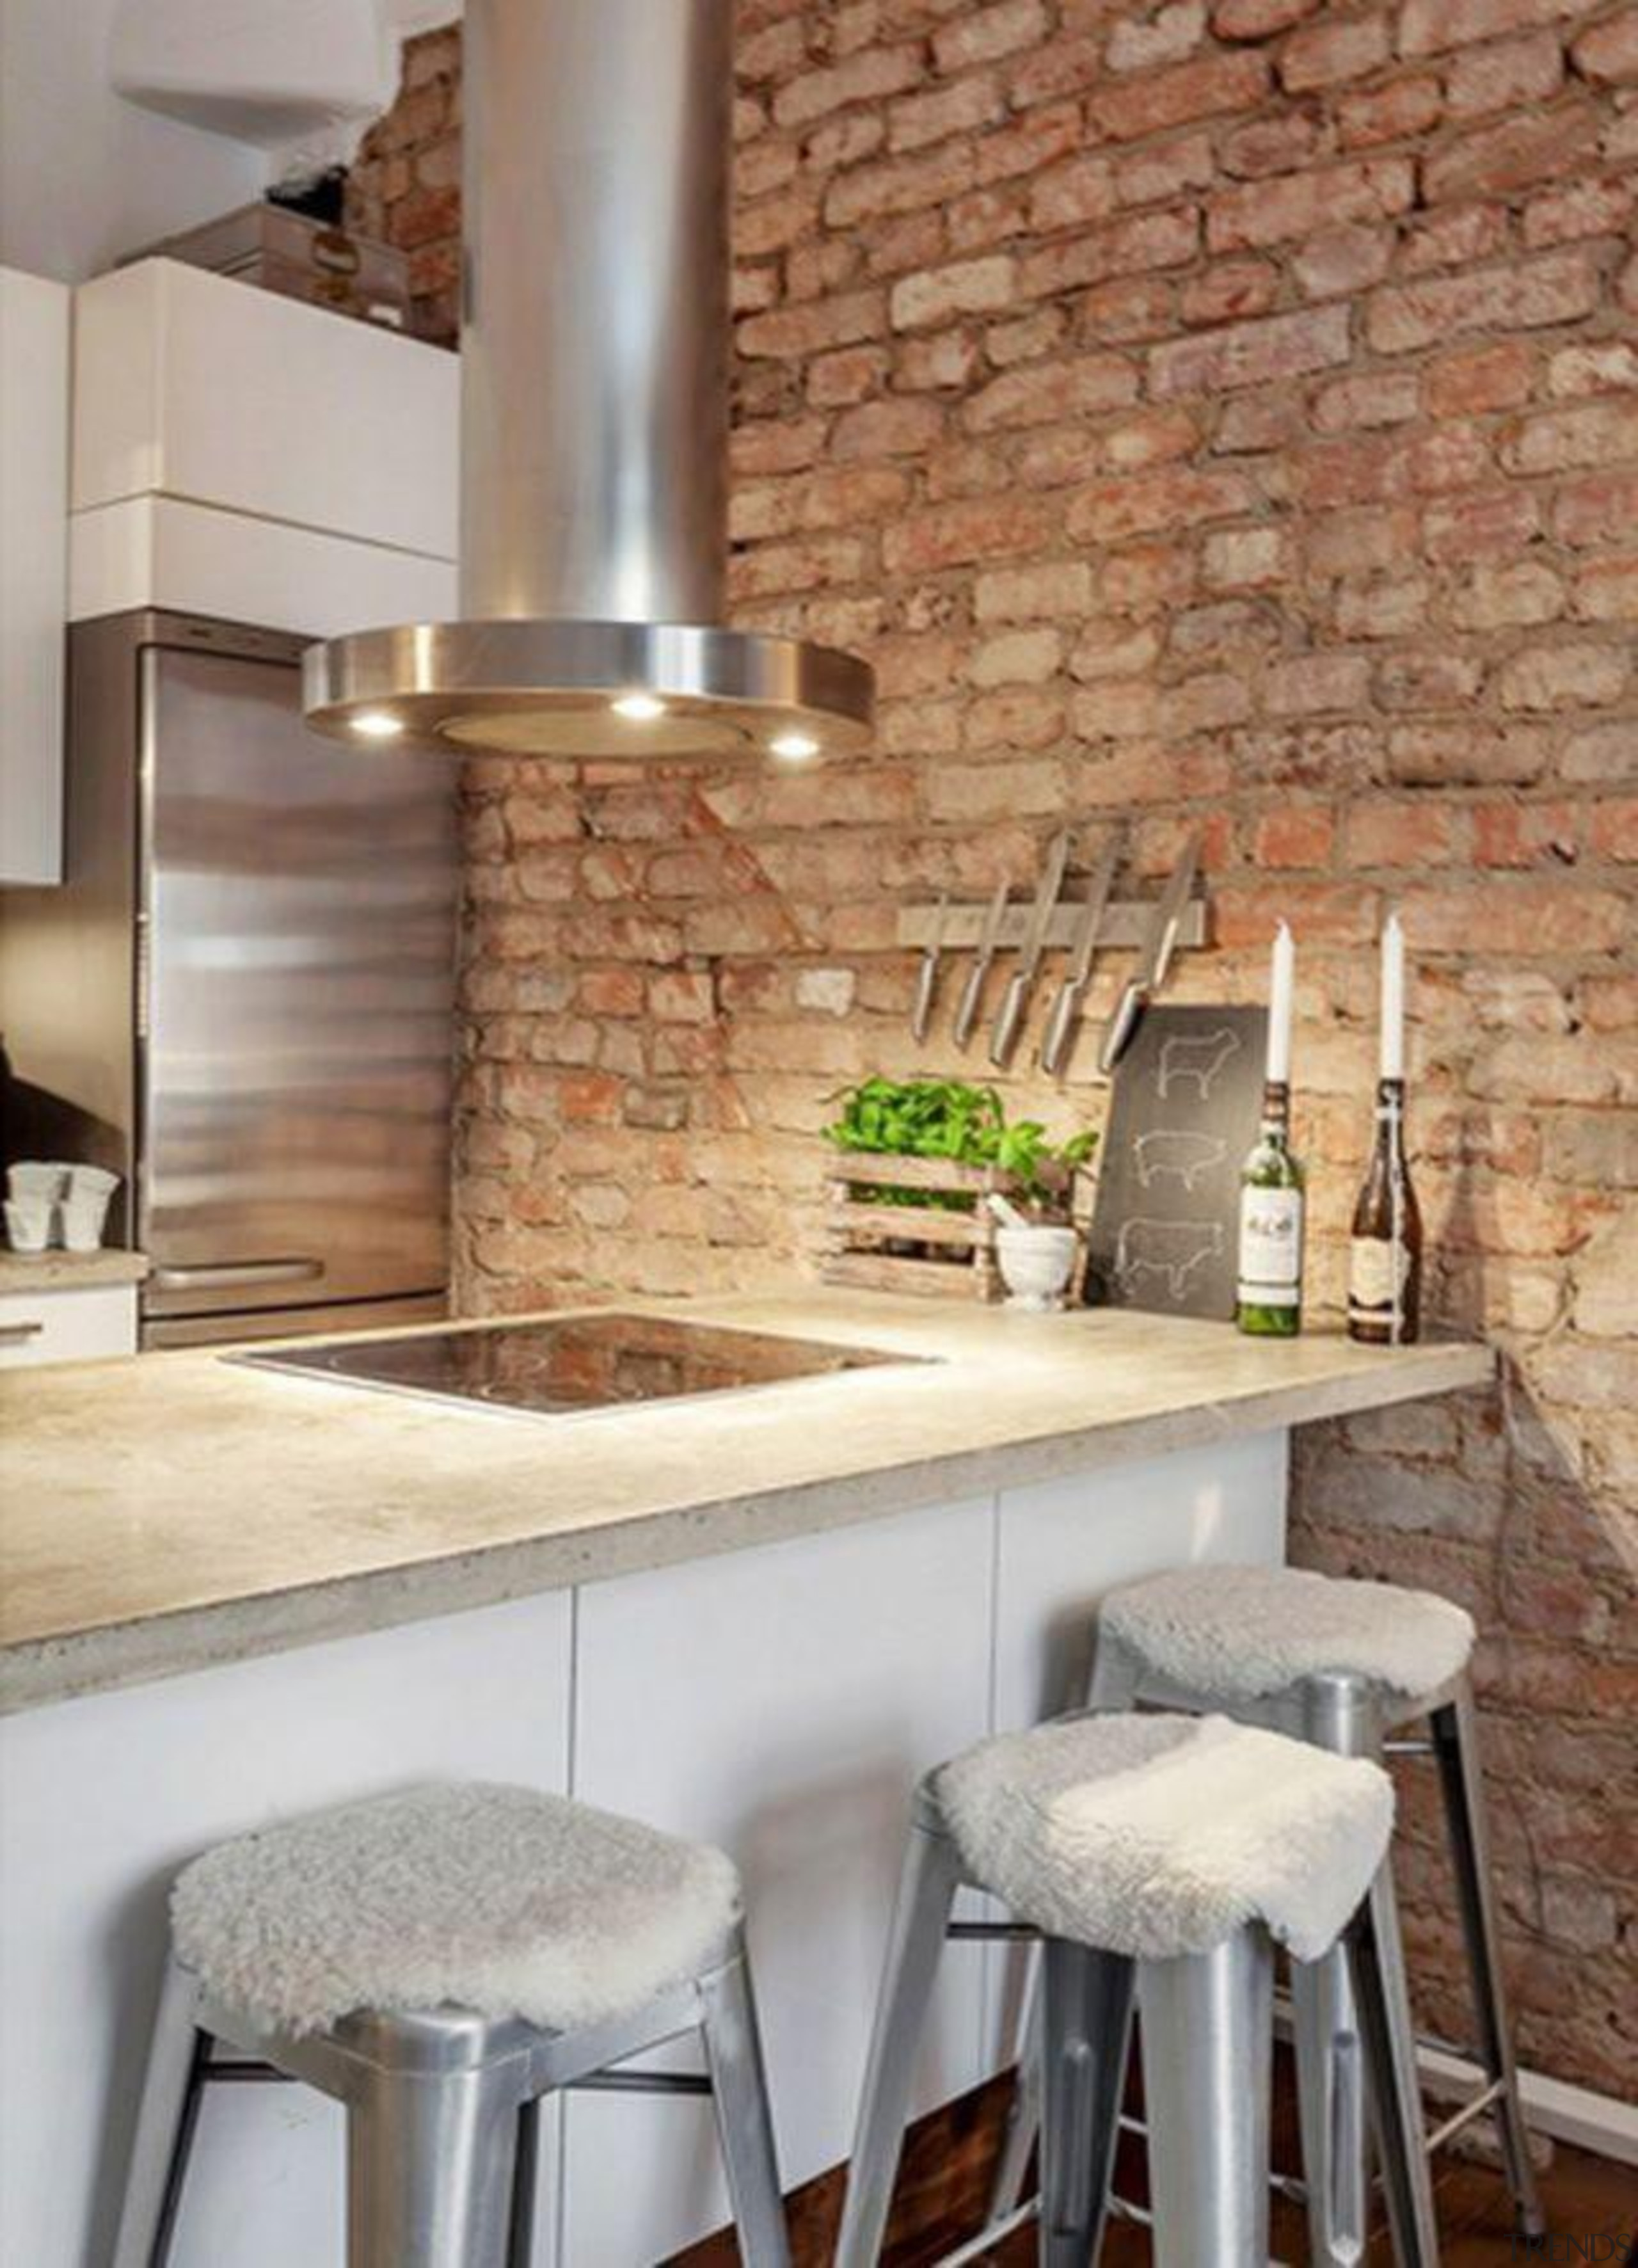 Start a myTrends ProjectCreate an ideas hub for countertop, floor, flooring, hearth, interior design, kitchen, table, tile, wall, gray, brown